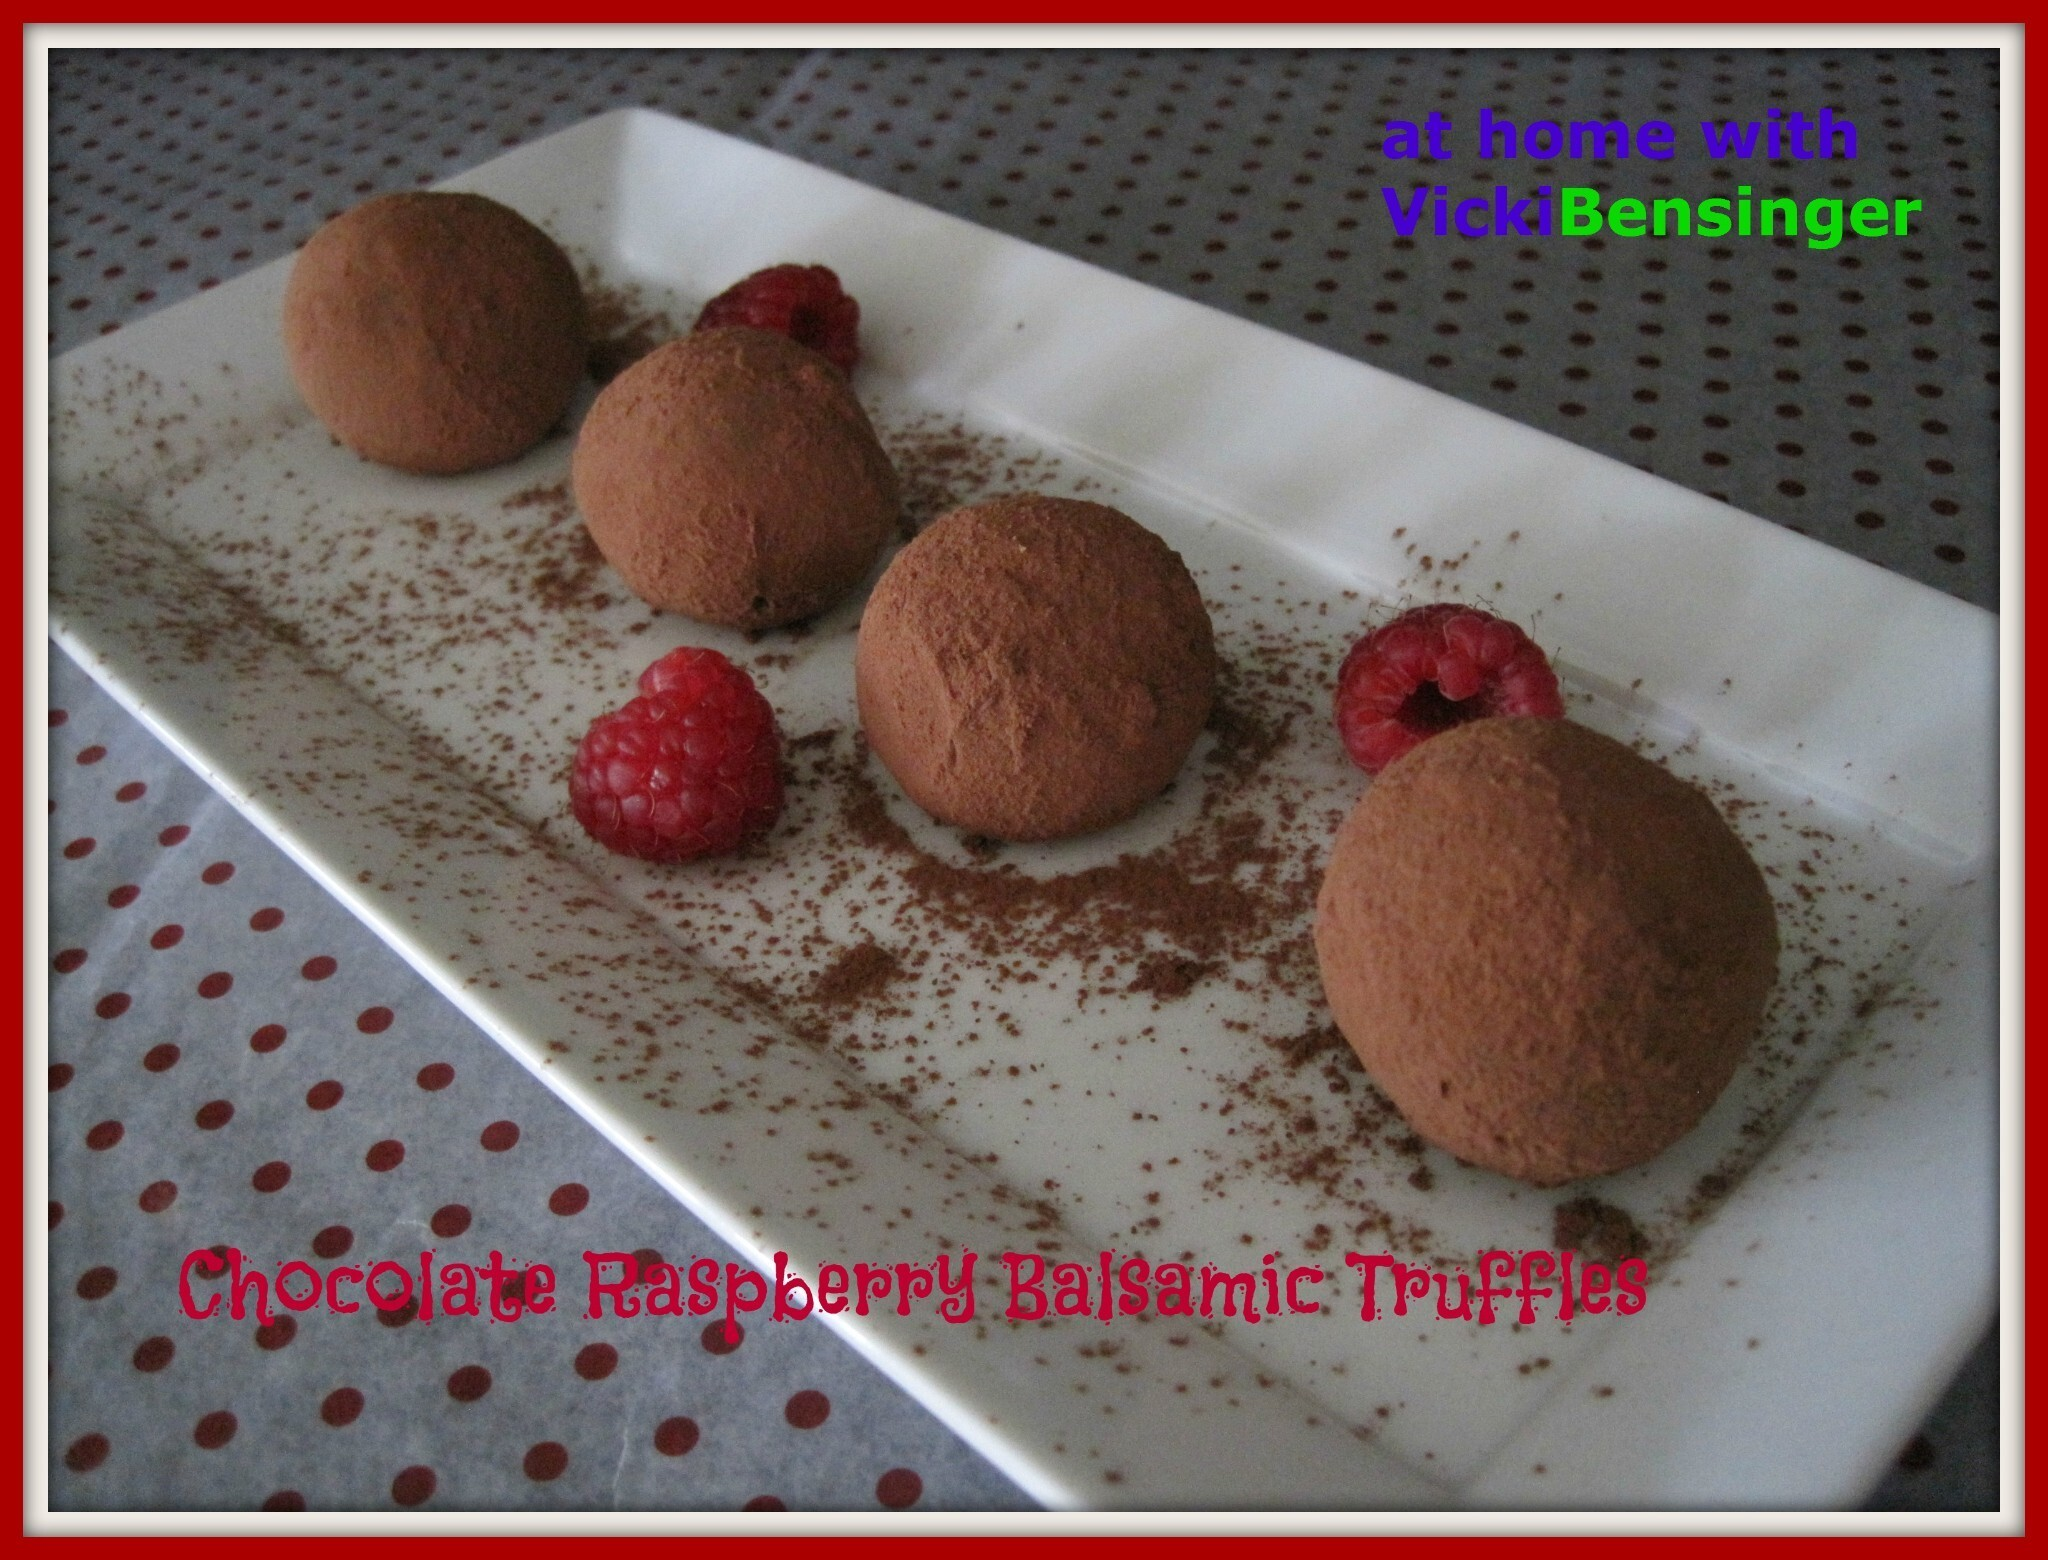 Chocolate Raspberry Balsamic Truffles